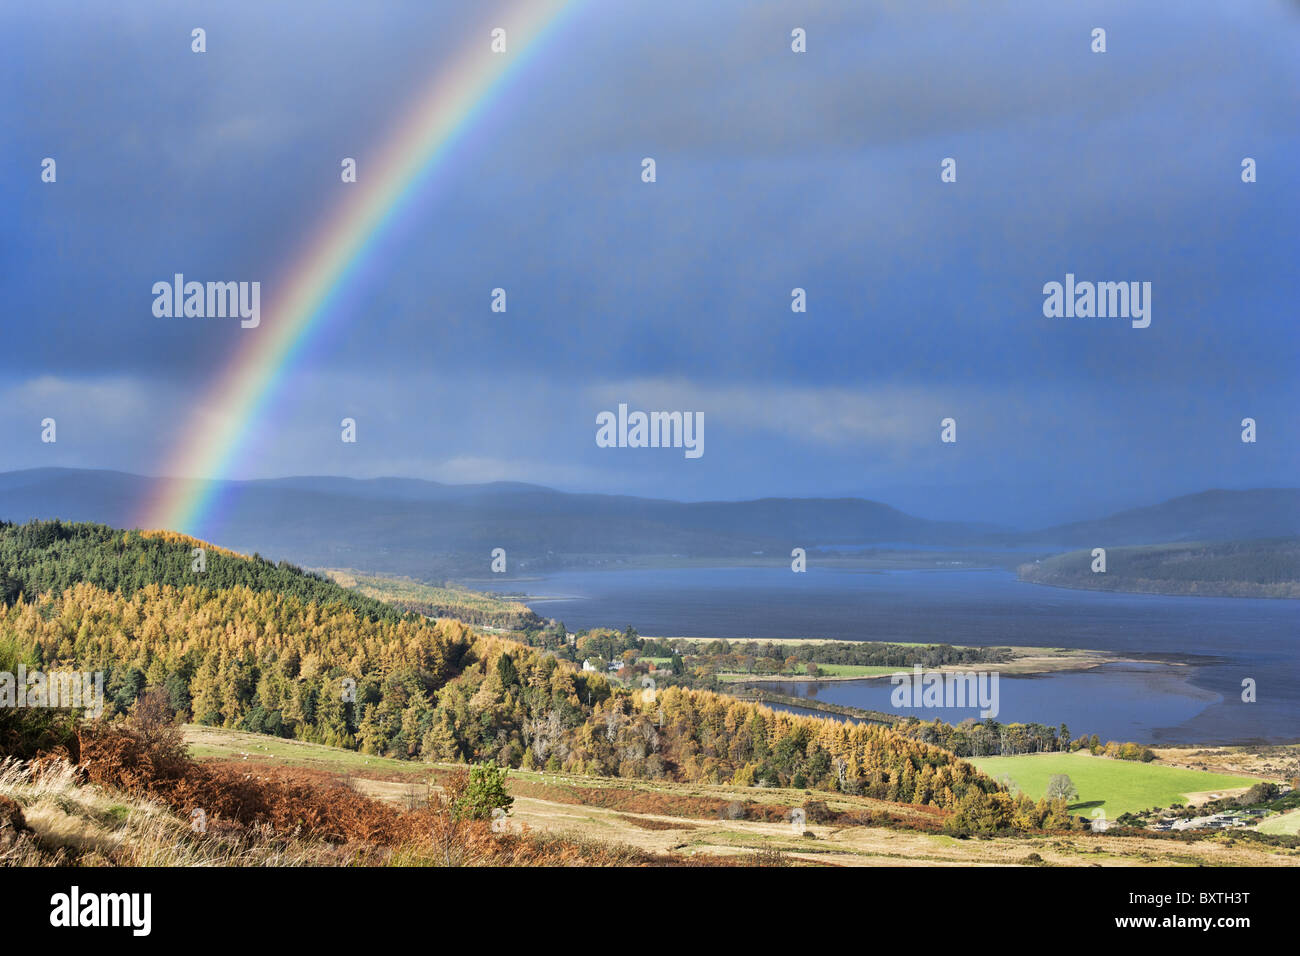 Scenery of the Moray Firth - Stock Image